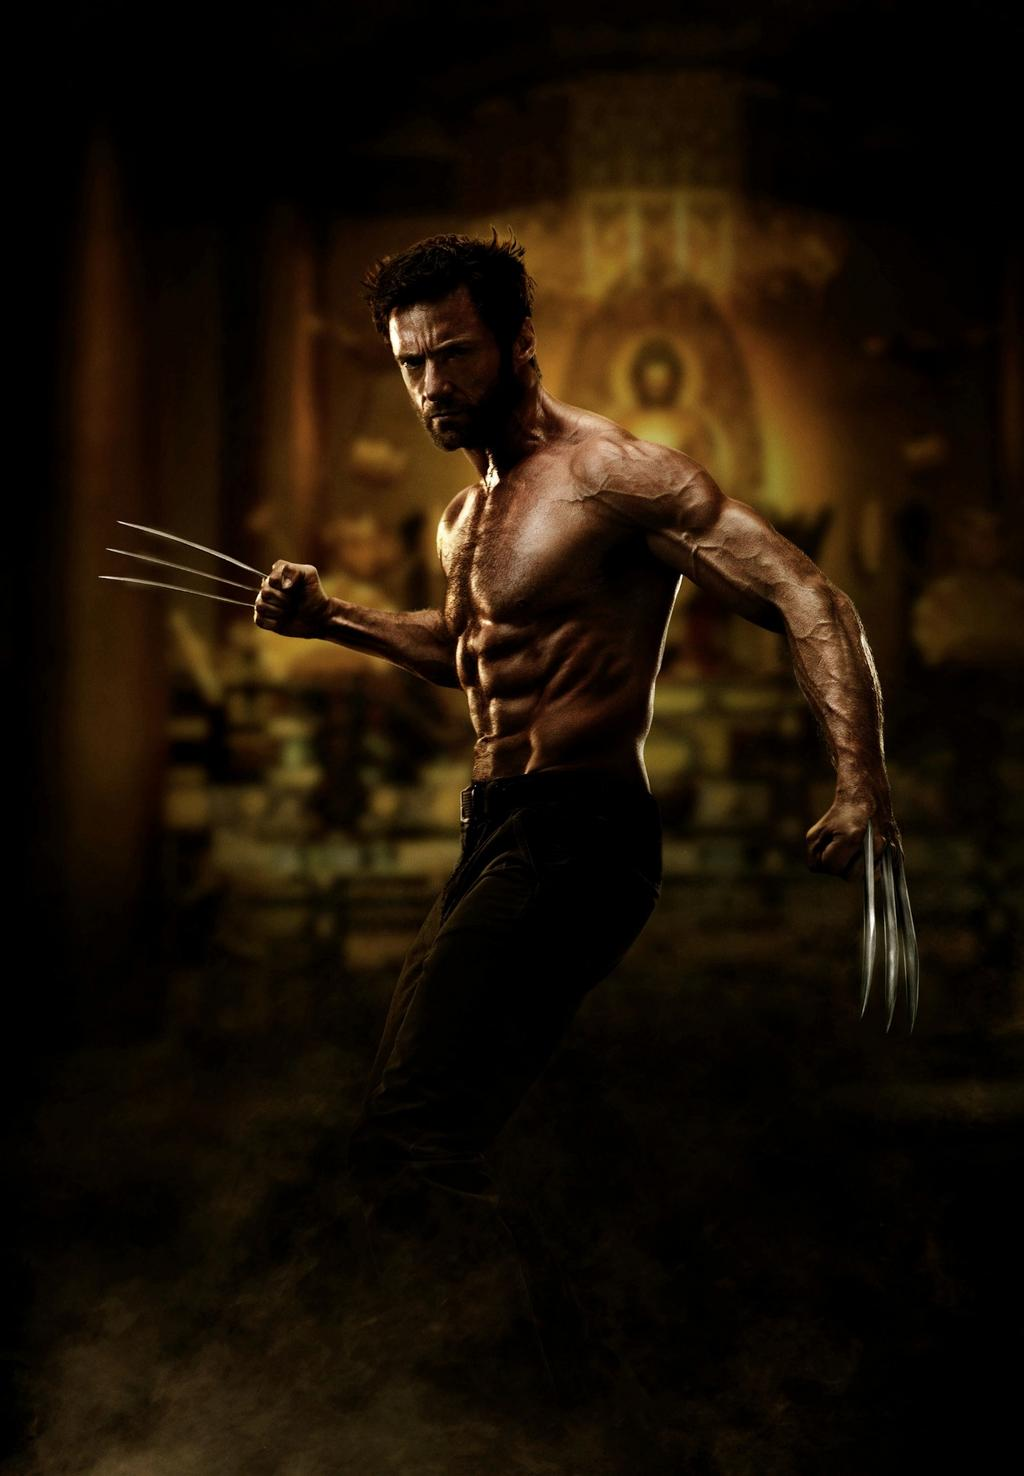 http://collider.com/wp-content/uploads/hugh-jackman-the-wolverine1.jpg